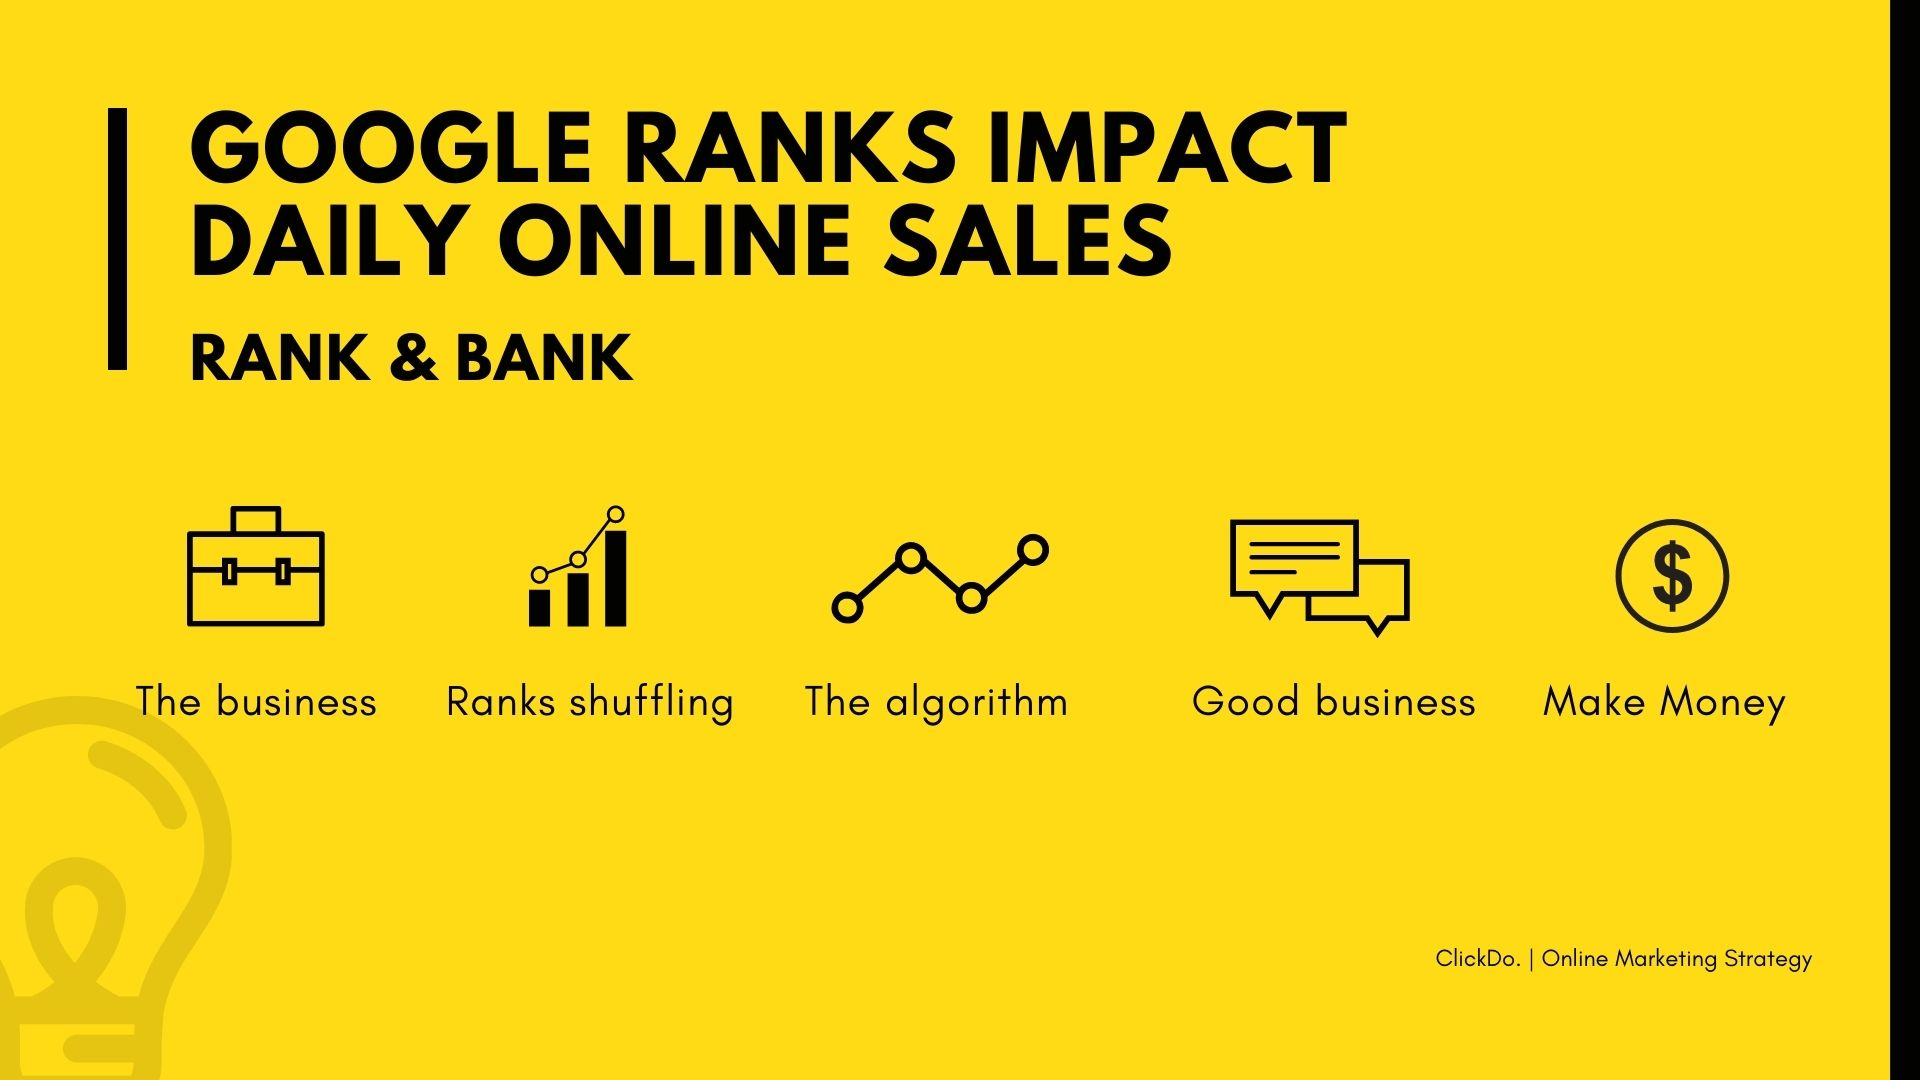 Google-Ranks-Impact-daily-online-sales